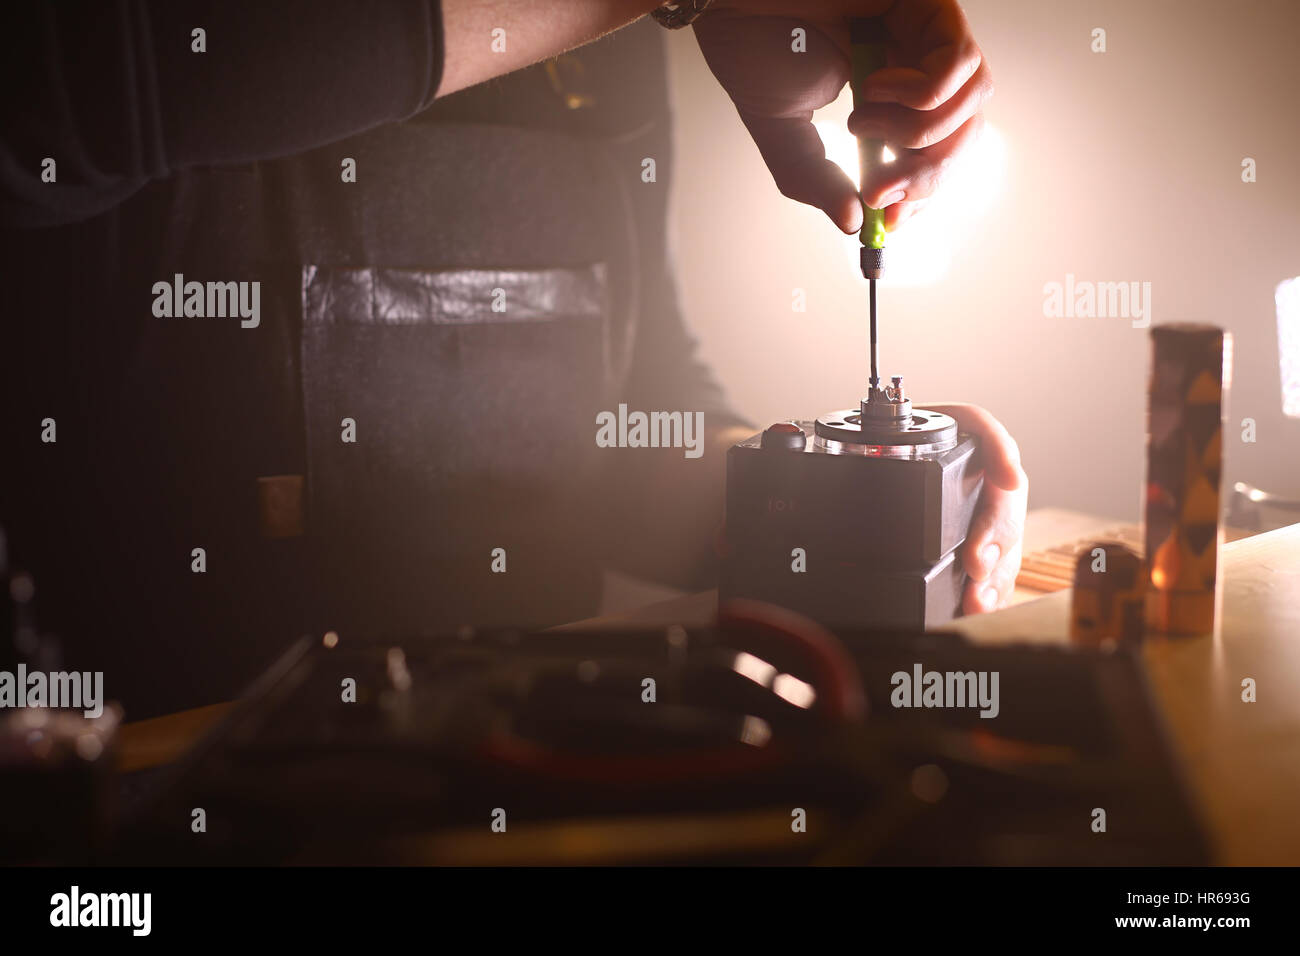 test burning the new dual kanthal micro coils on the atomizers deck base of electronic cigarette for vaping, close - Stock Image